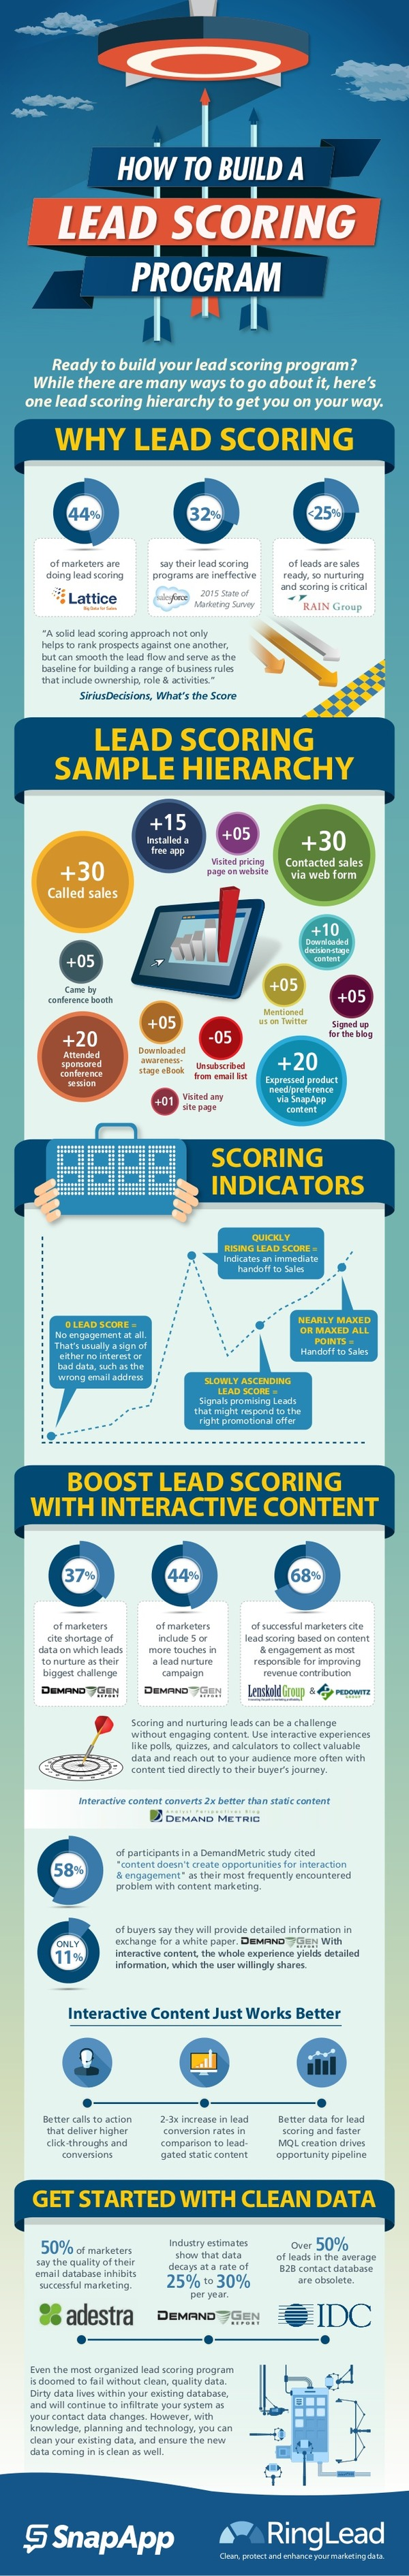 Lead Scoring 101: How to Build a Hierarchy [Infographic] - Pardot | The Marketing Technology Alert | Scoop.it